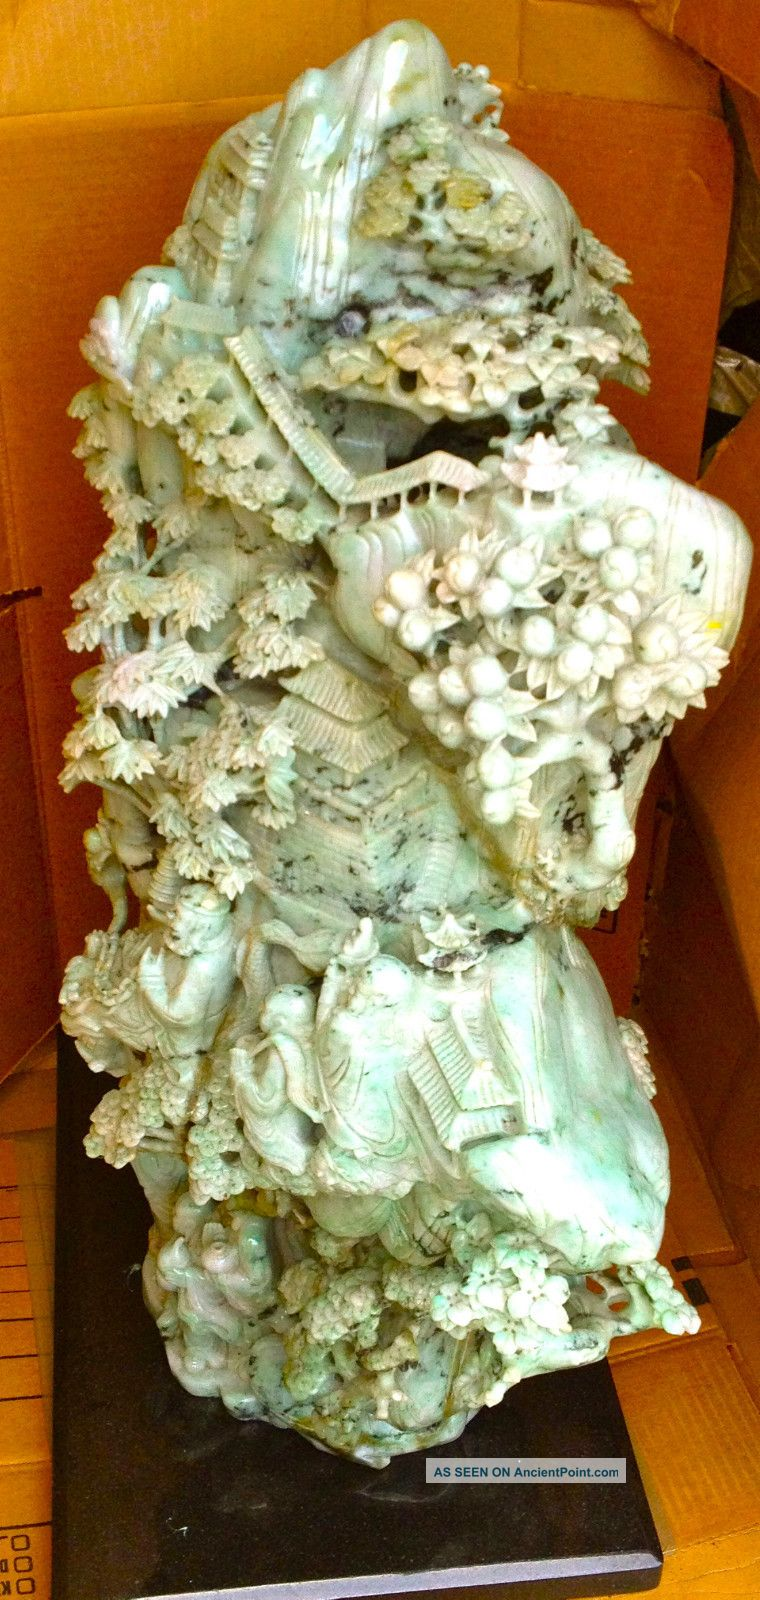 Exquisite Chinese Jade Sculpture Beyond Compare And Very Rare Buddha photo